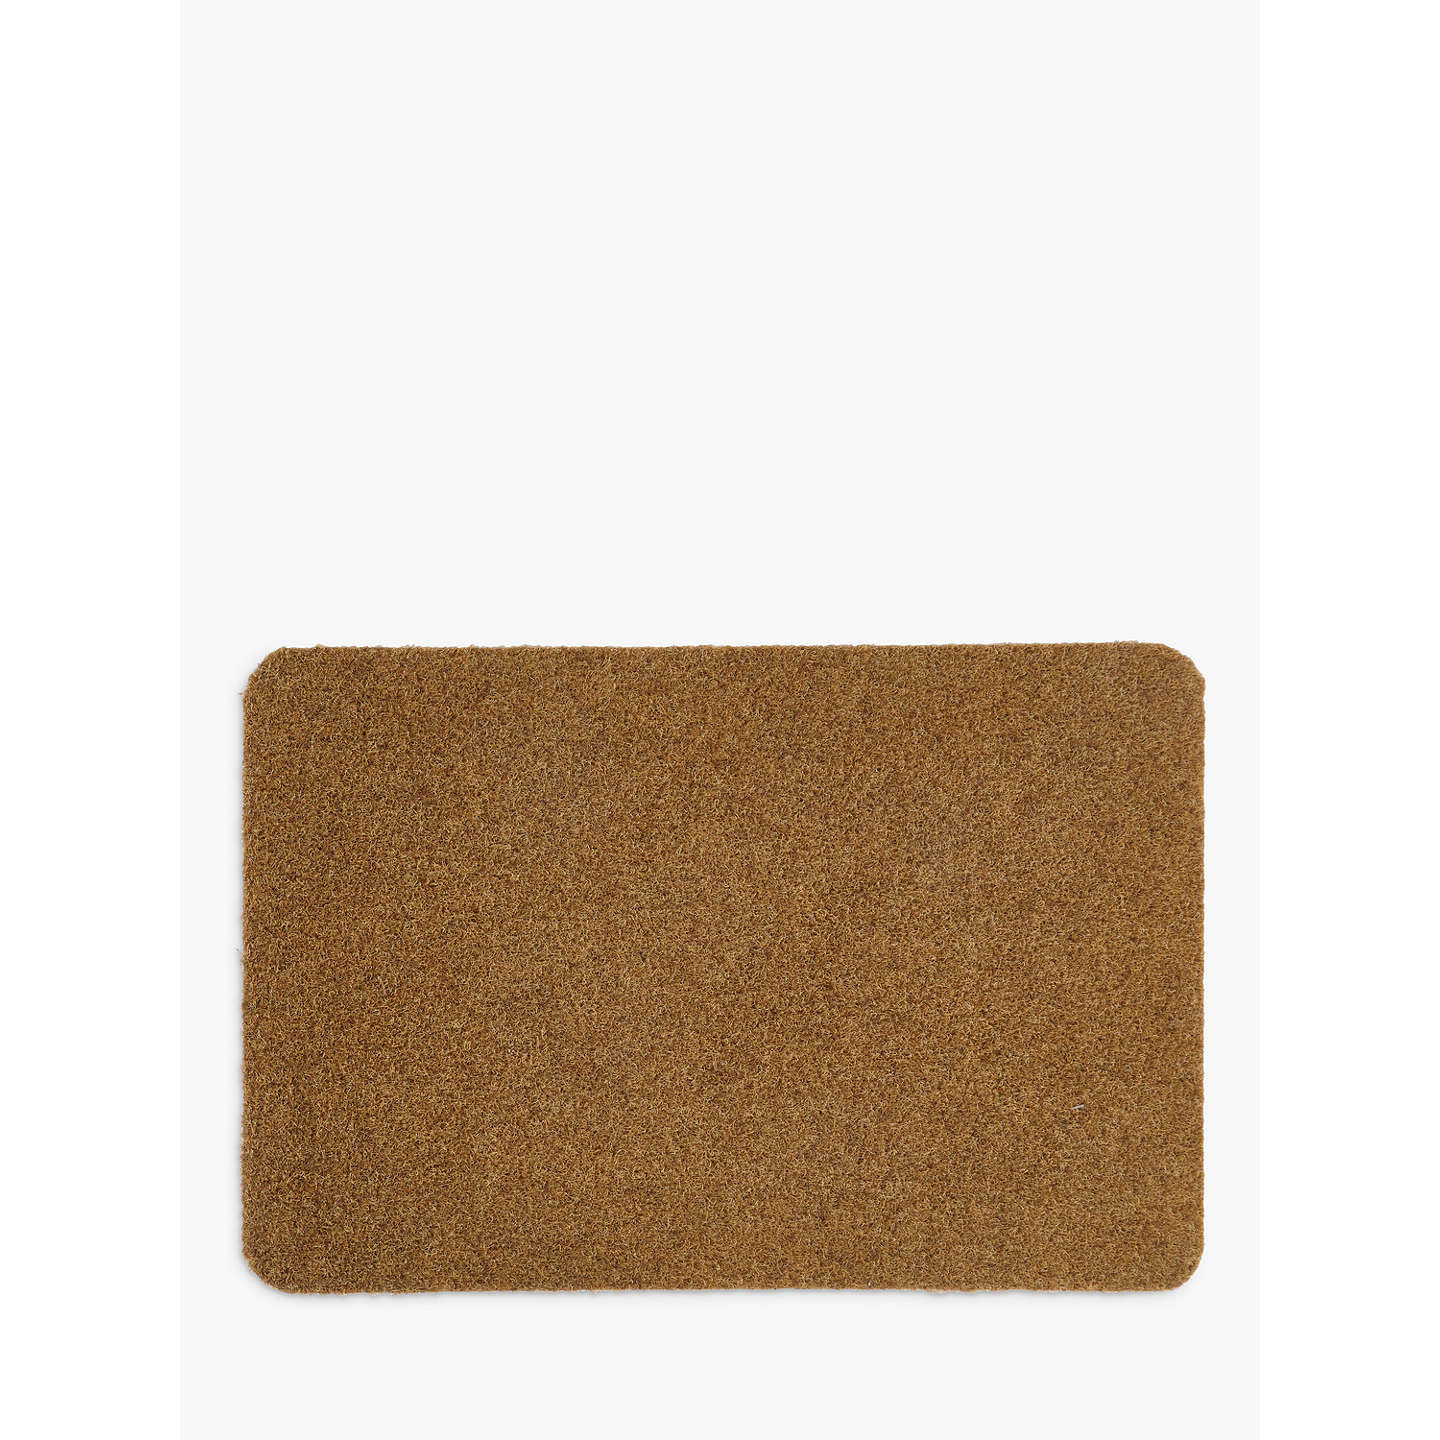 BuyJohn Lewis Supreme Non Shed Door Mat Rug Natural Online at johnlewis.com ...  sc 1 st  John Lewis & John Lewis Supreme Non Shed Door Mat Rug at John Lewis